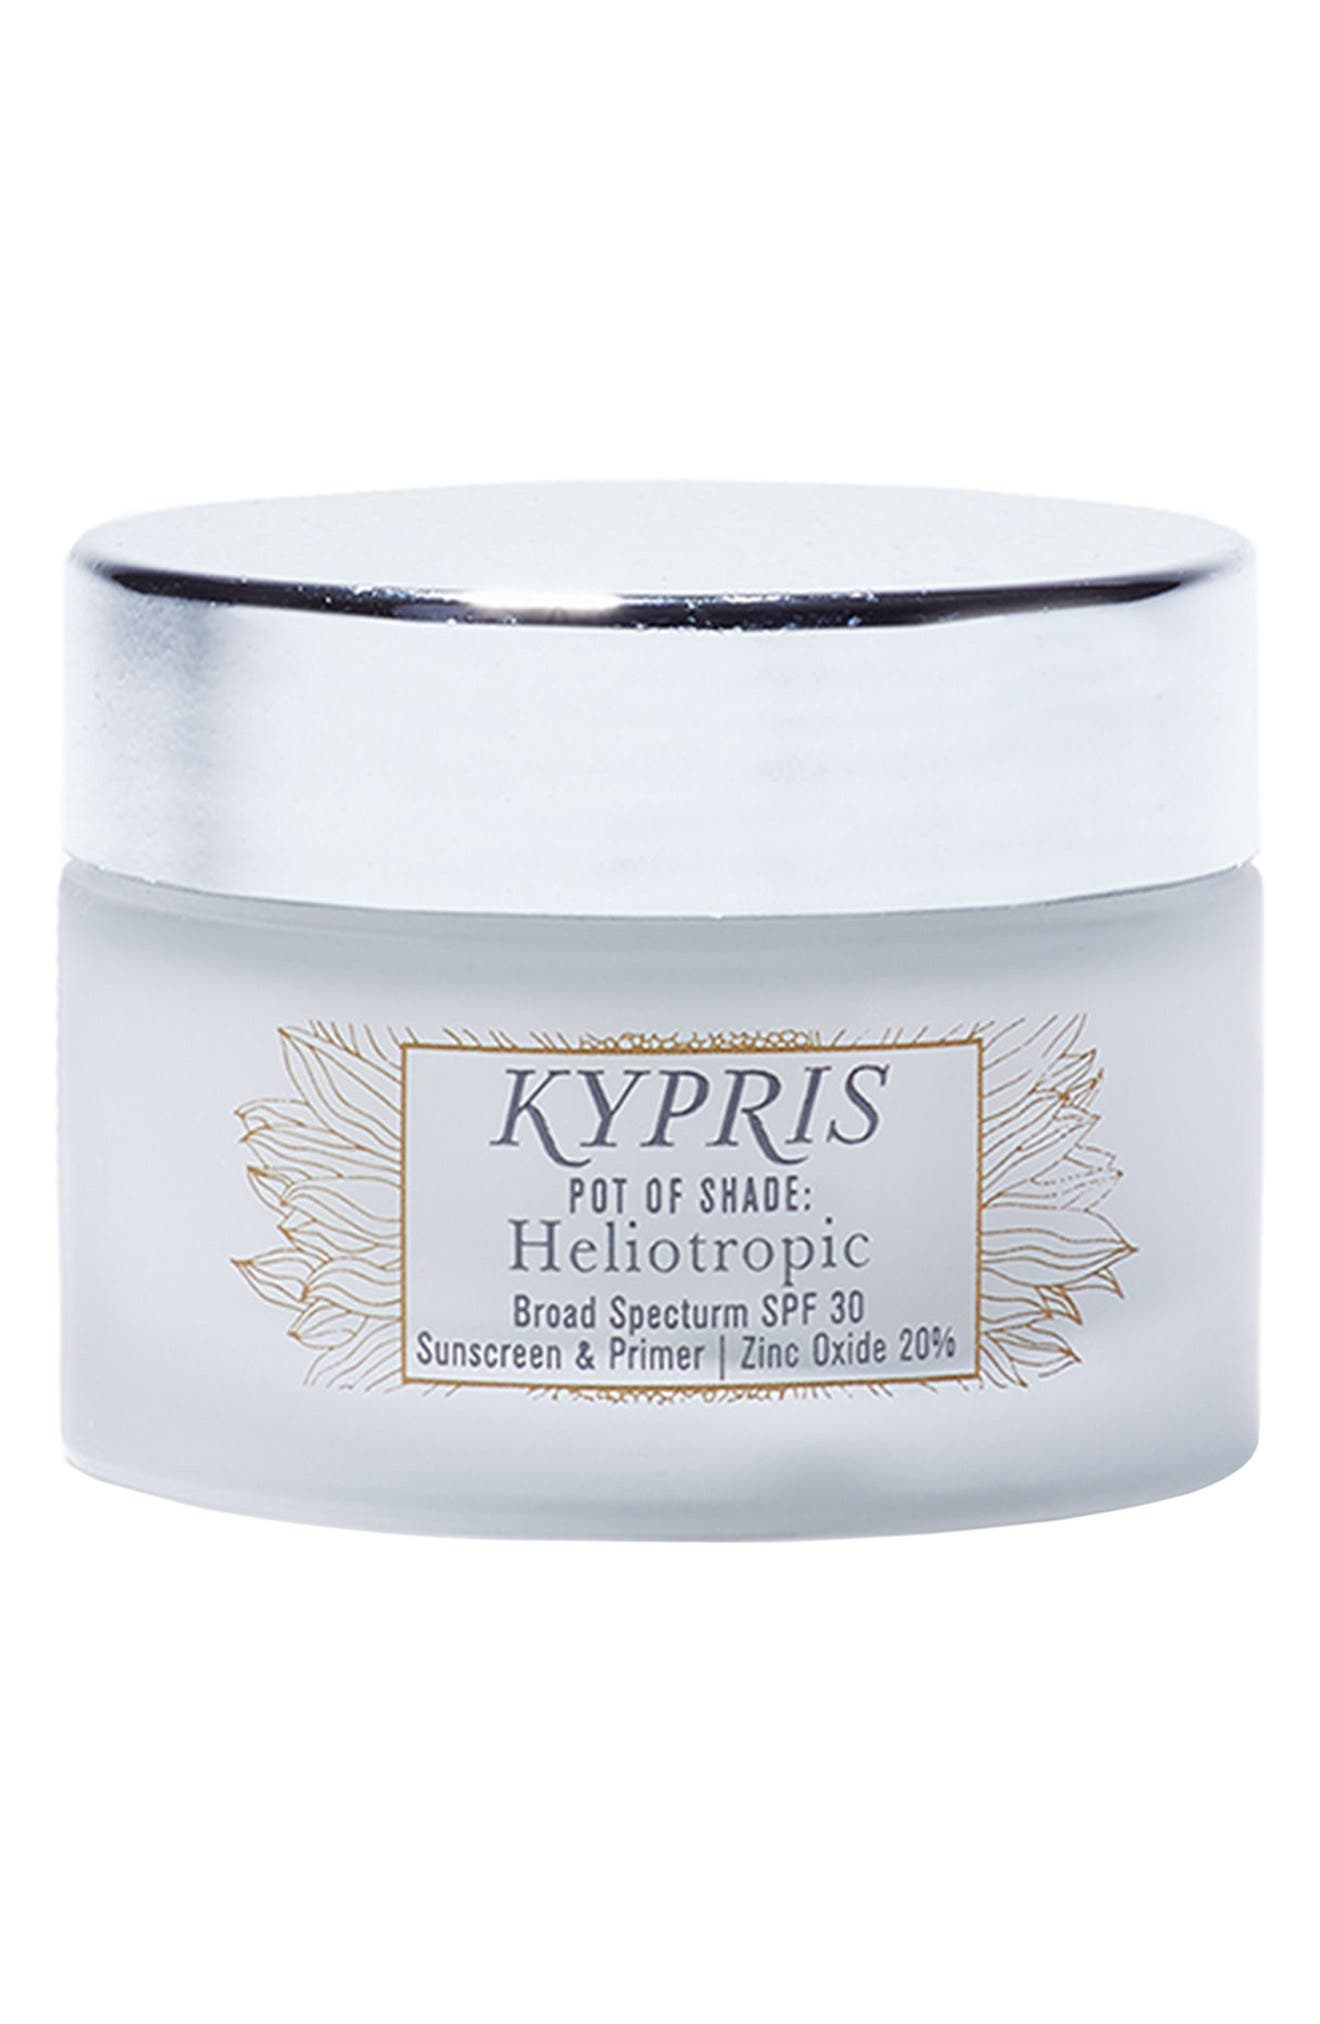 KYPRIS BEAUTY, Pot of Shade Heliotropic Treatment Primer SPF 30, Main thumbnail 1, color, NO COLOR